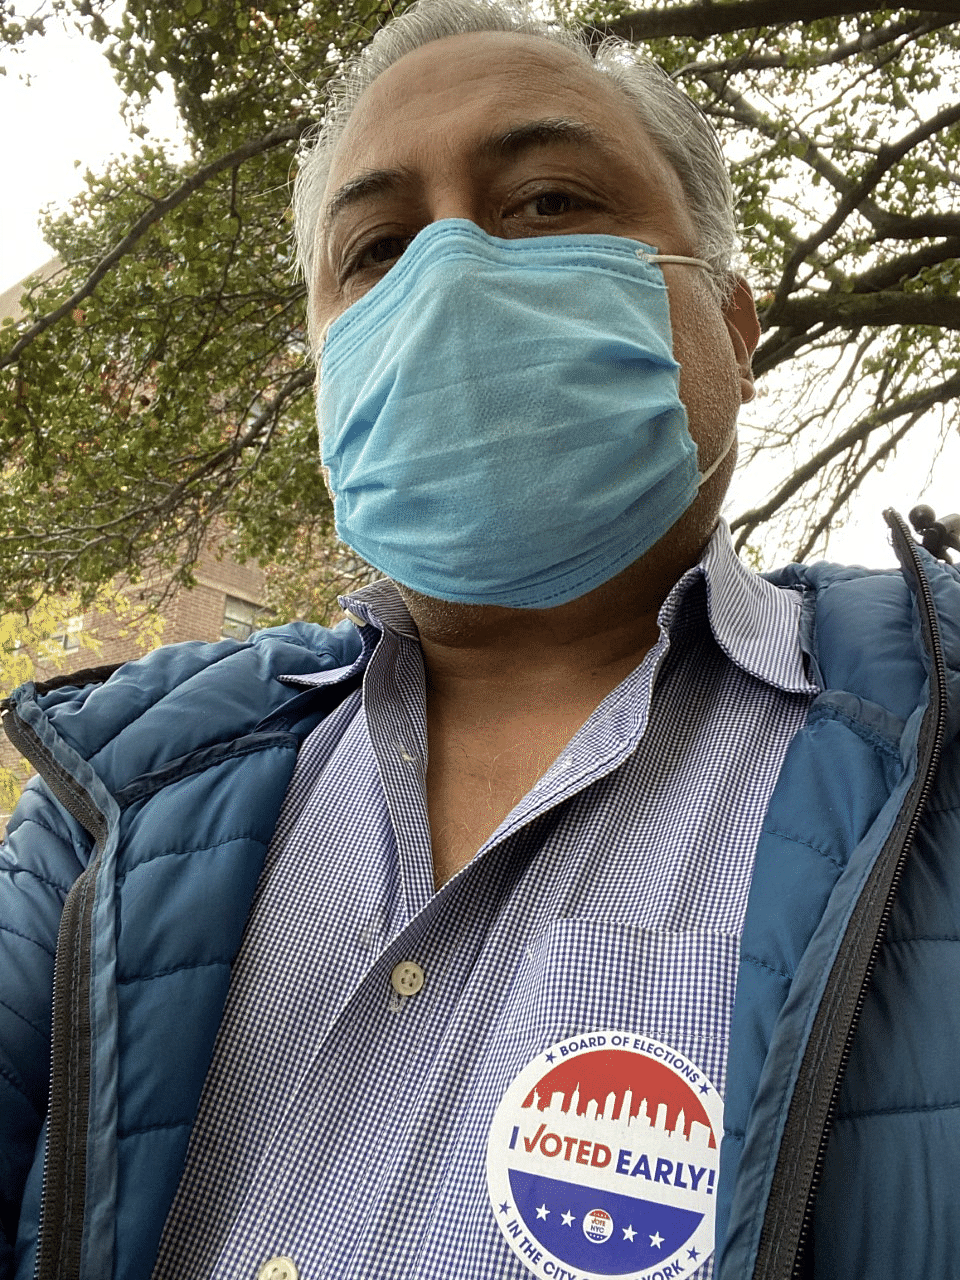 A selfie of the author, Aseem Chhabra, after he voted.